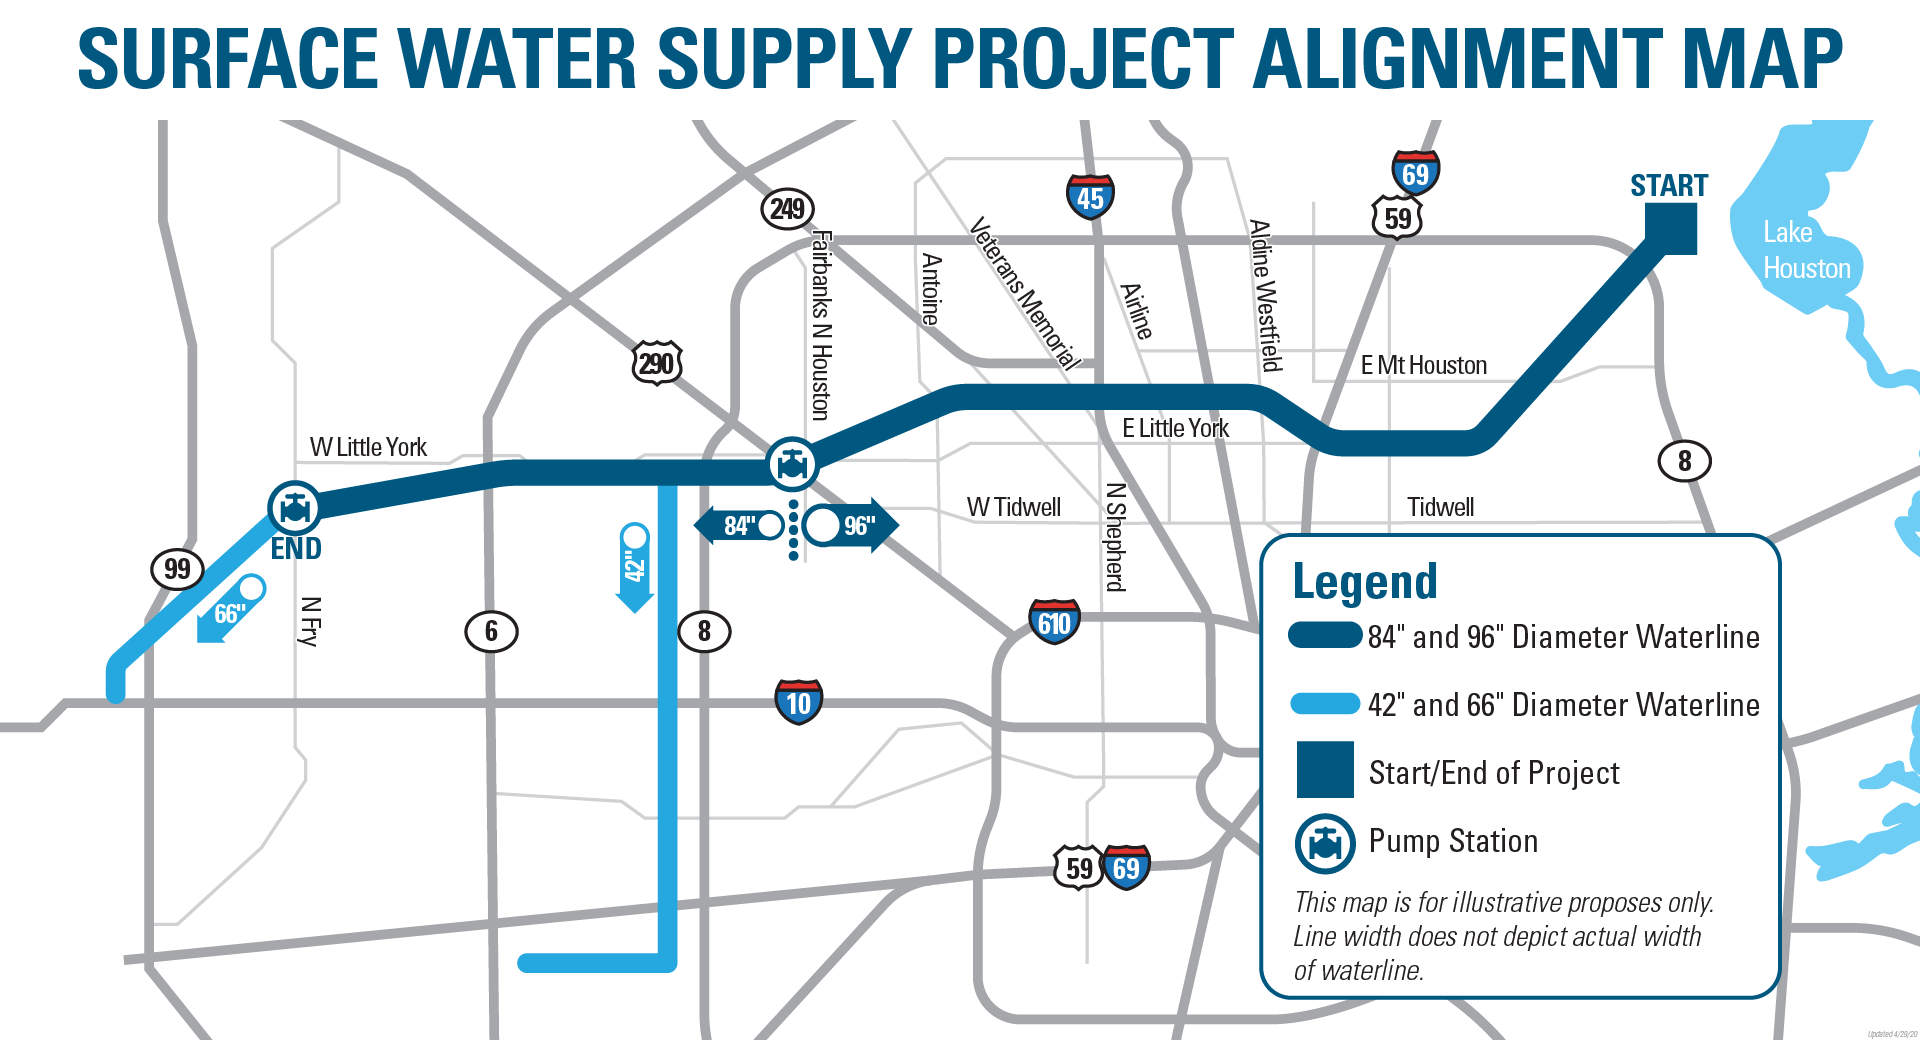 Map of the Surface Water Supply Project